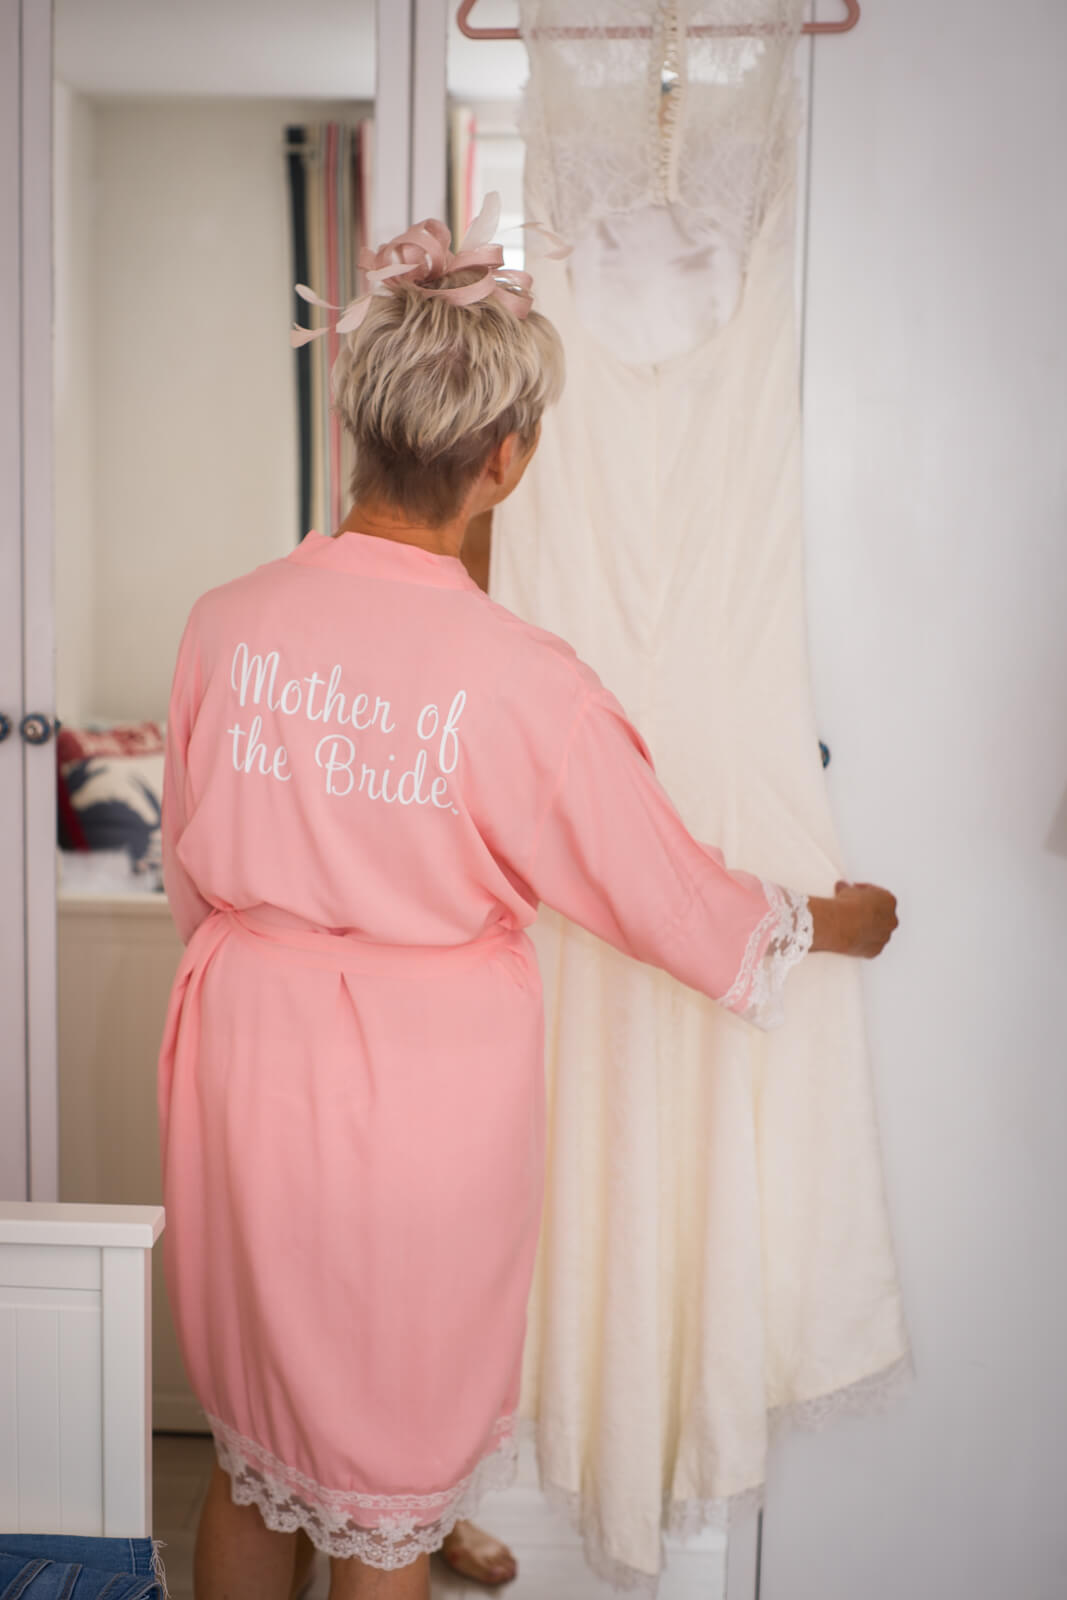 Mother of the bride in dressing gown admiring wedding dress